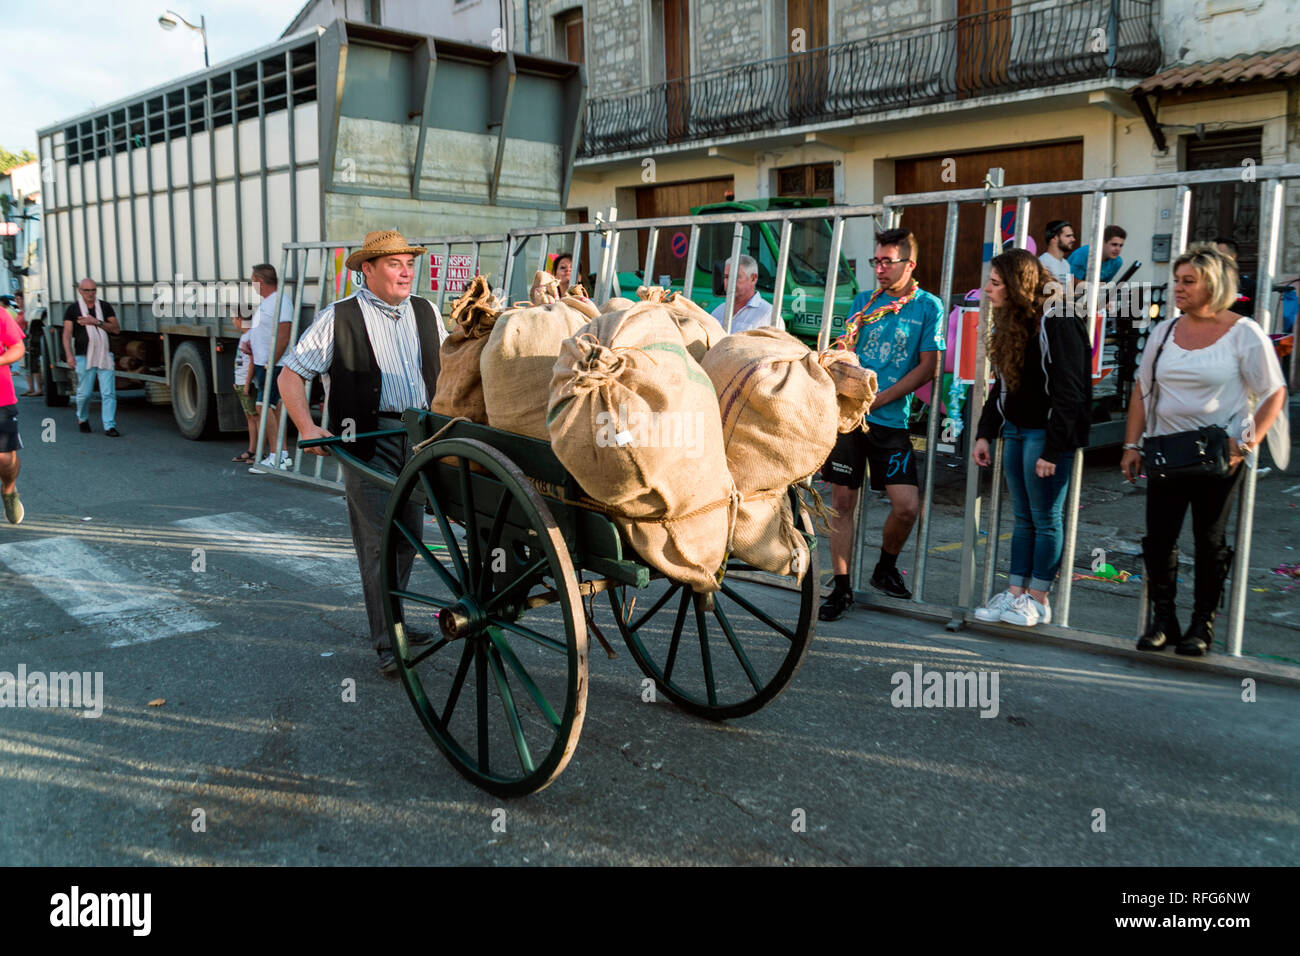 Frenchman pushing sacks of goods, Old School Parade of traditional trades at Annual Fete, Saint Gilles, Gard, France - Stock Image